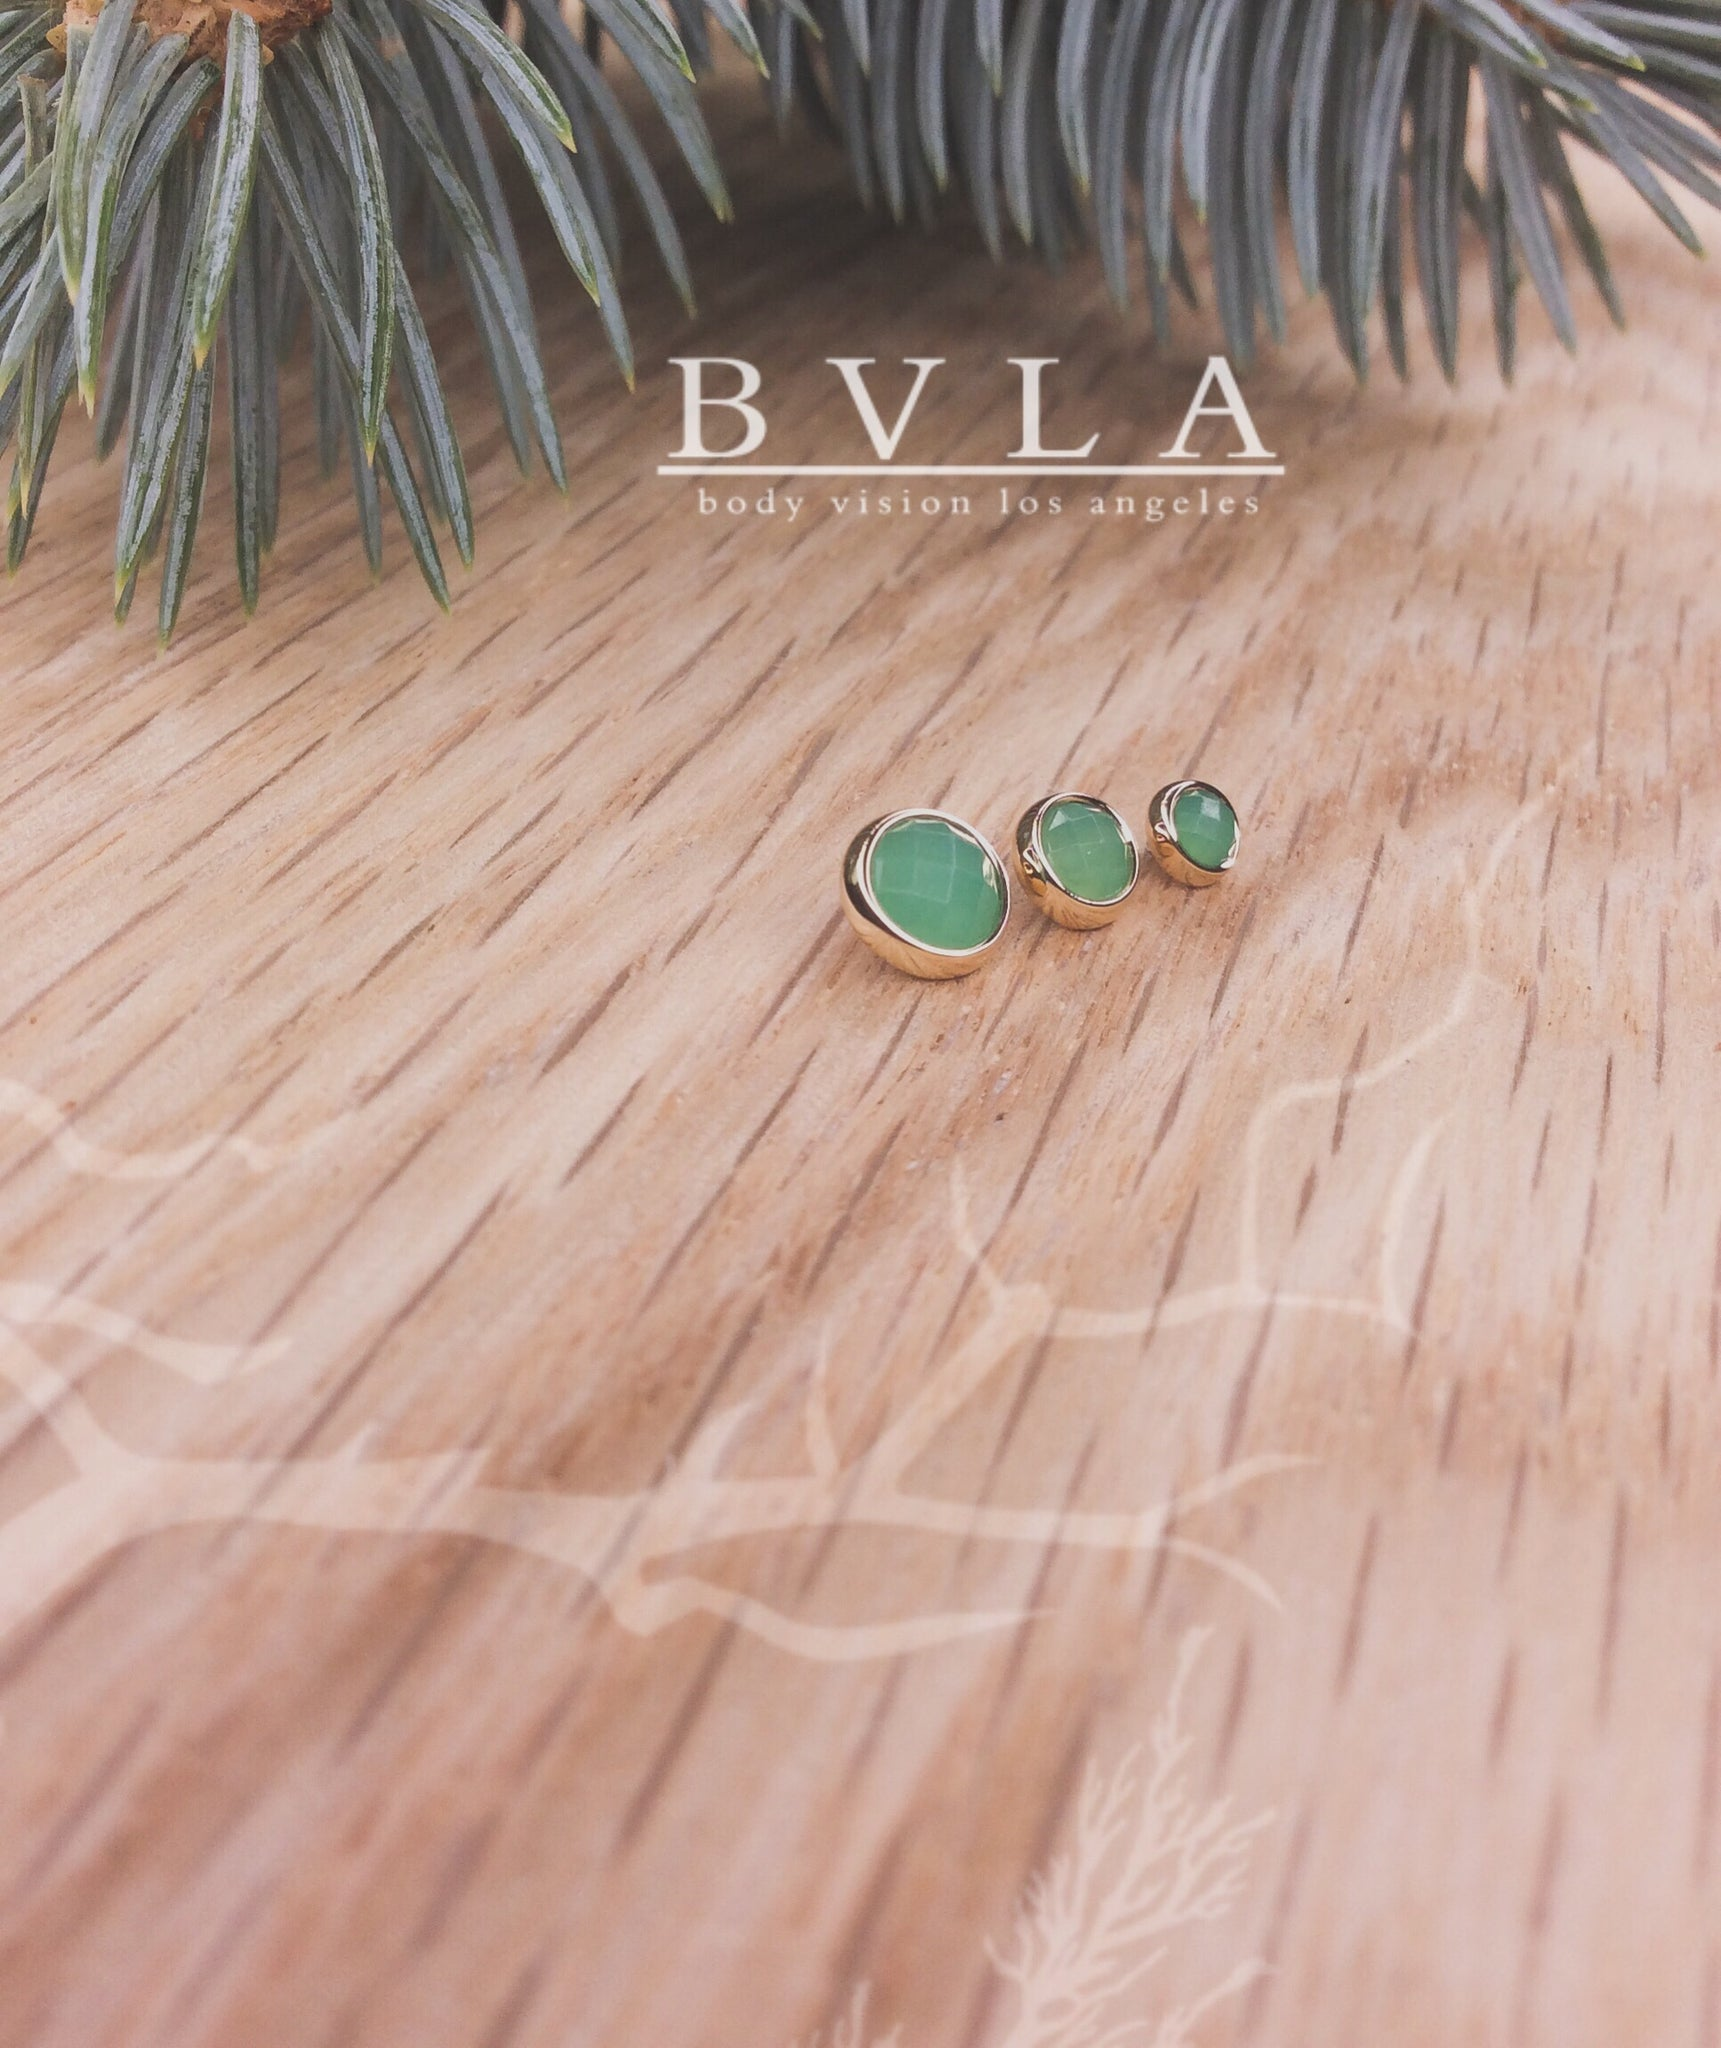 6mm Yellow Gold Rose Cut Chrysoprase End